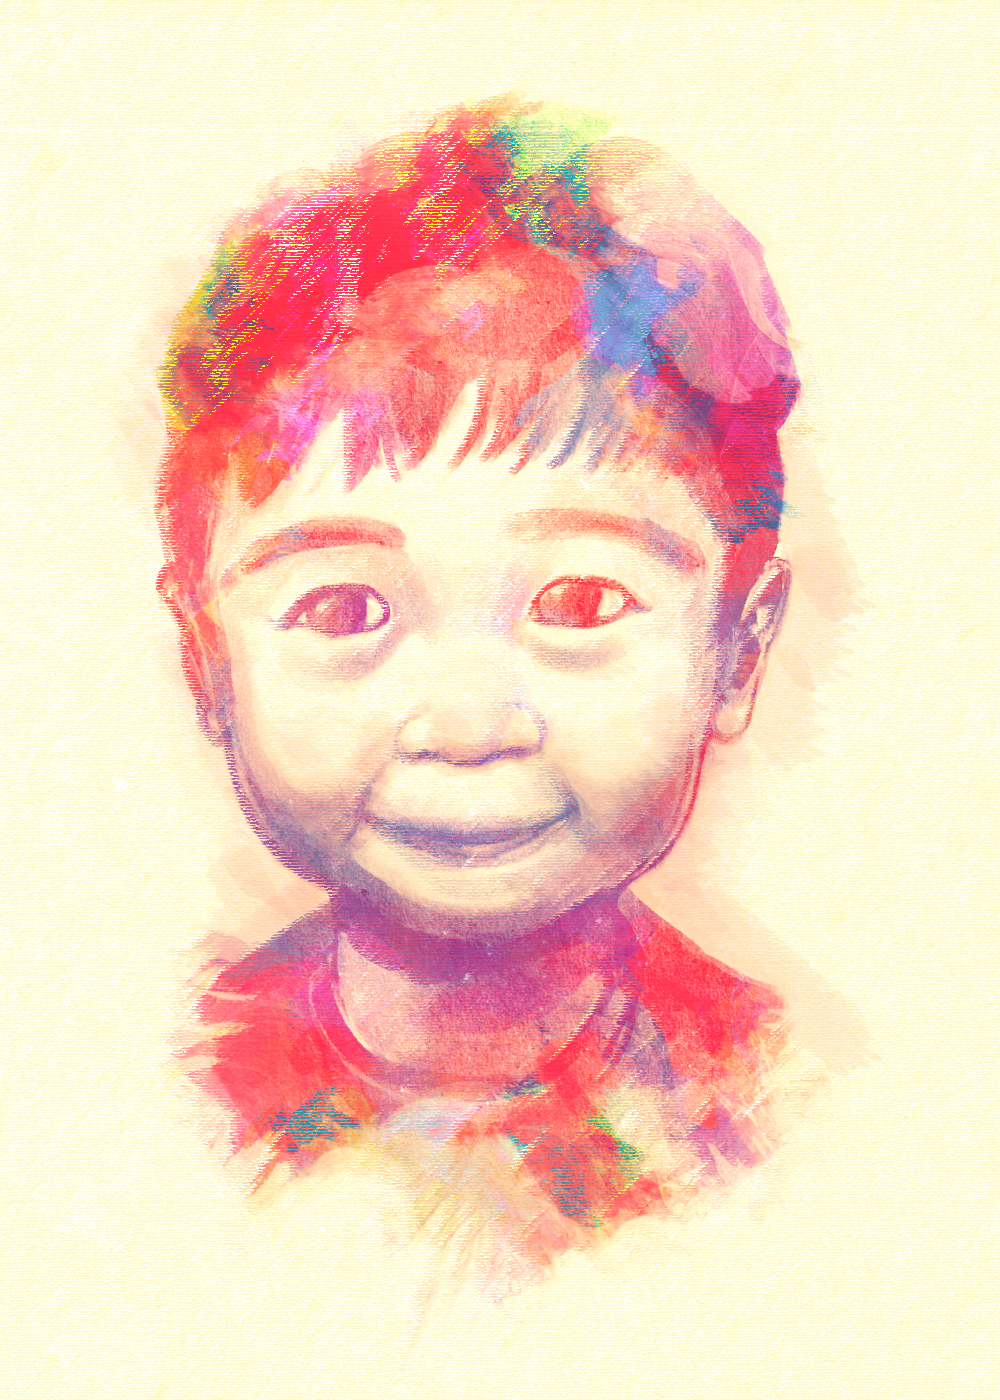 KarenGonzales_PortraitA_Watercolour.jpg